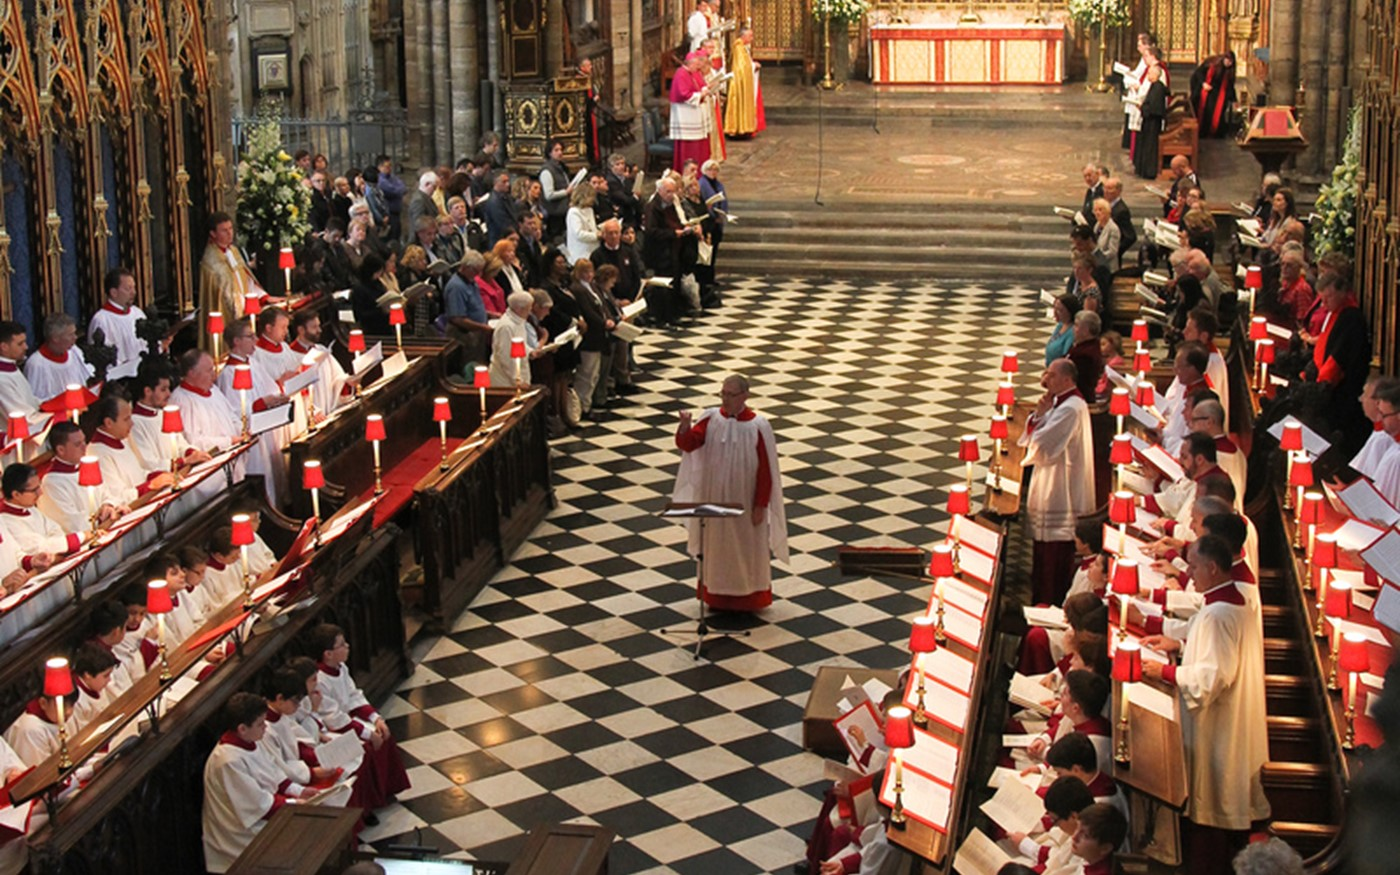 The Sistine Chapel Choir visited Westminster Abbey to sing Evensong and perform a recital of sacred choral music